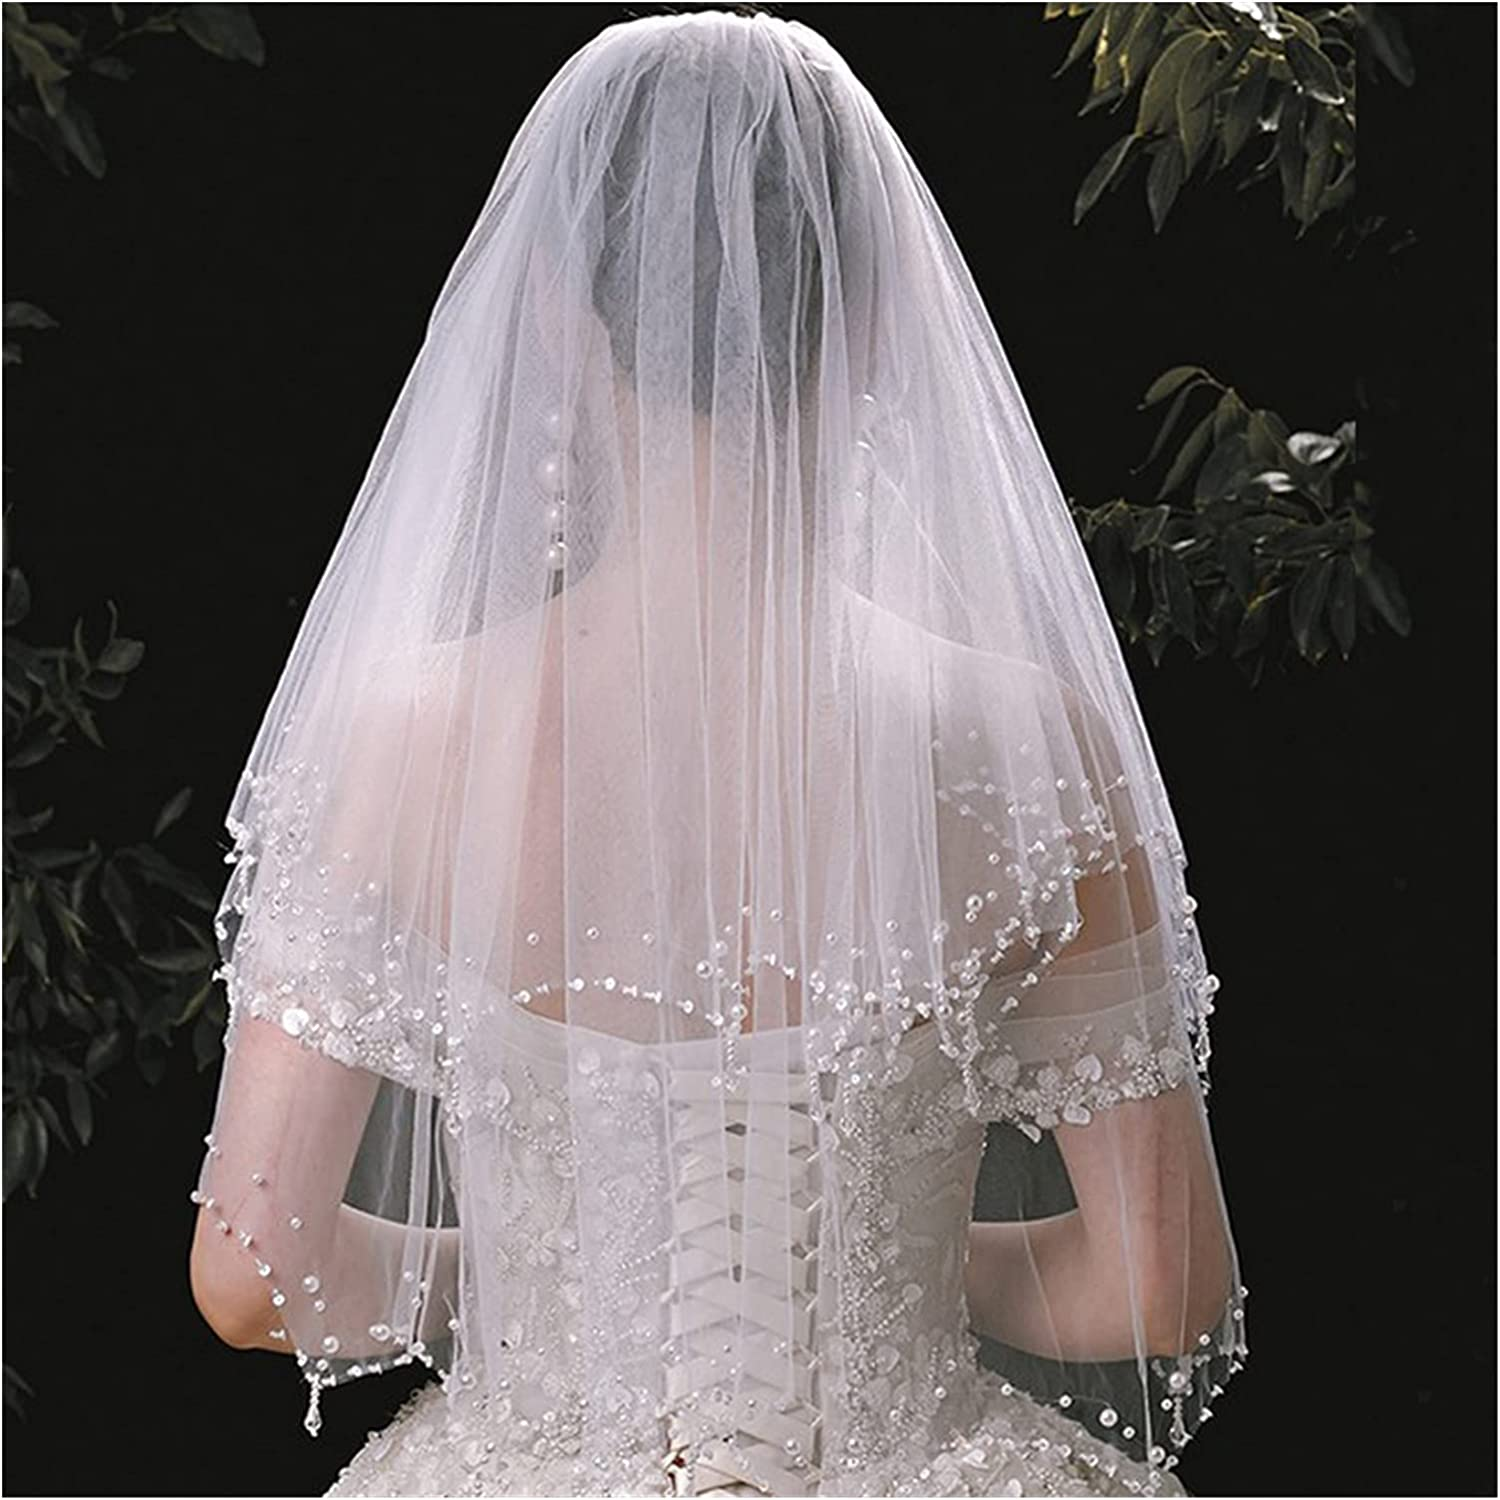 xunyang Direct sale of manufacturer White Ivory 2 Tiers Veils Fingertip Wedding Pear Crystal Branded goods